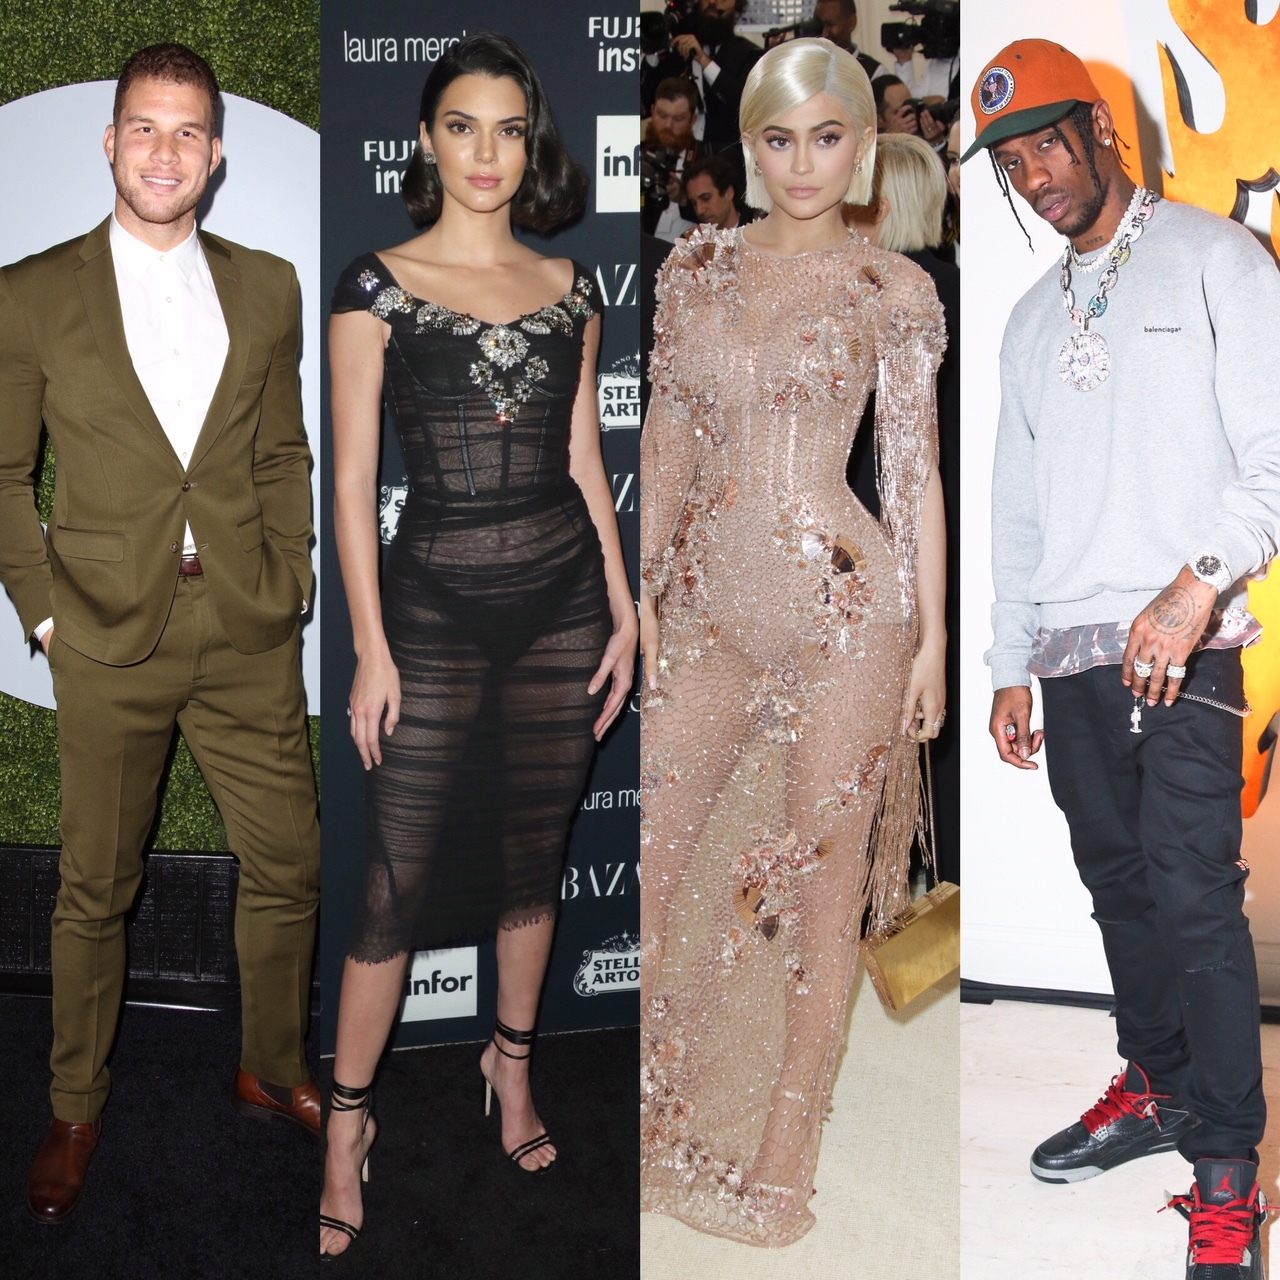 Blake Griffin at the GQ Men Of The Year in Los Angeles on Dec. 4, 2014. Kendall Jenner at the Harper's Bazaar ICONS party in New York City on Sept. 8, 2017. Kylie Jenner attends the The Costume Institute Benefit in New York City on May 1, 2017. Travis Scott attends the Ksubi x Travis Scott collaboration in New York City on Oct. 12, 2017.